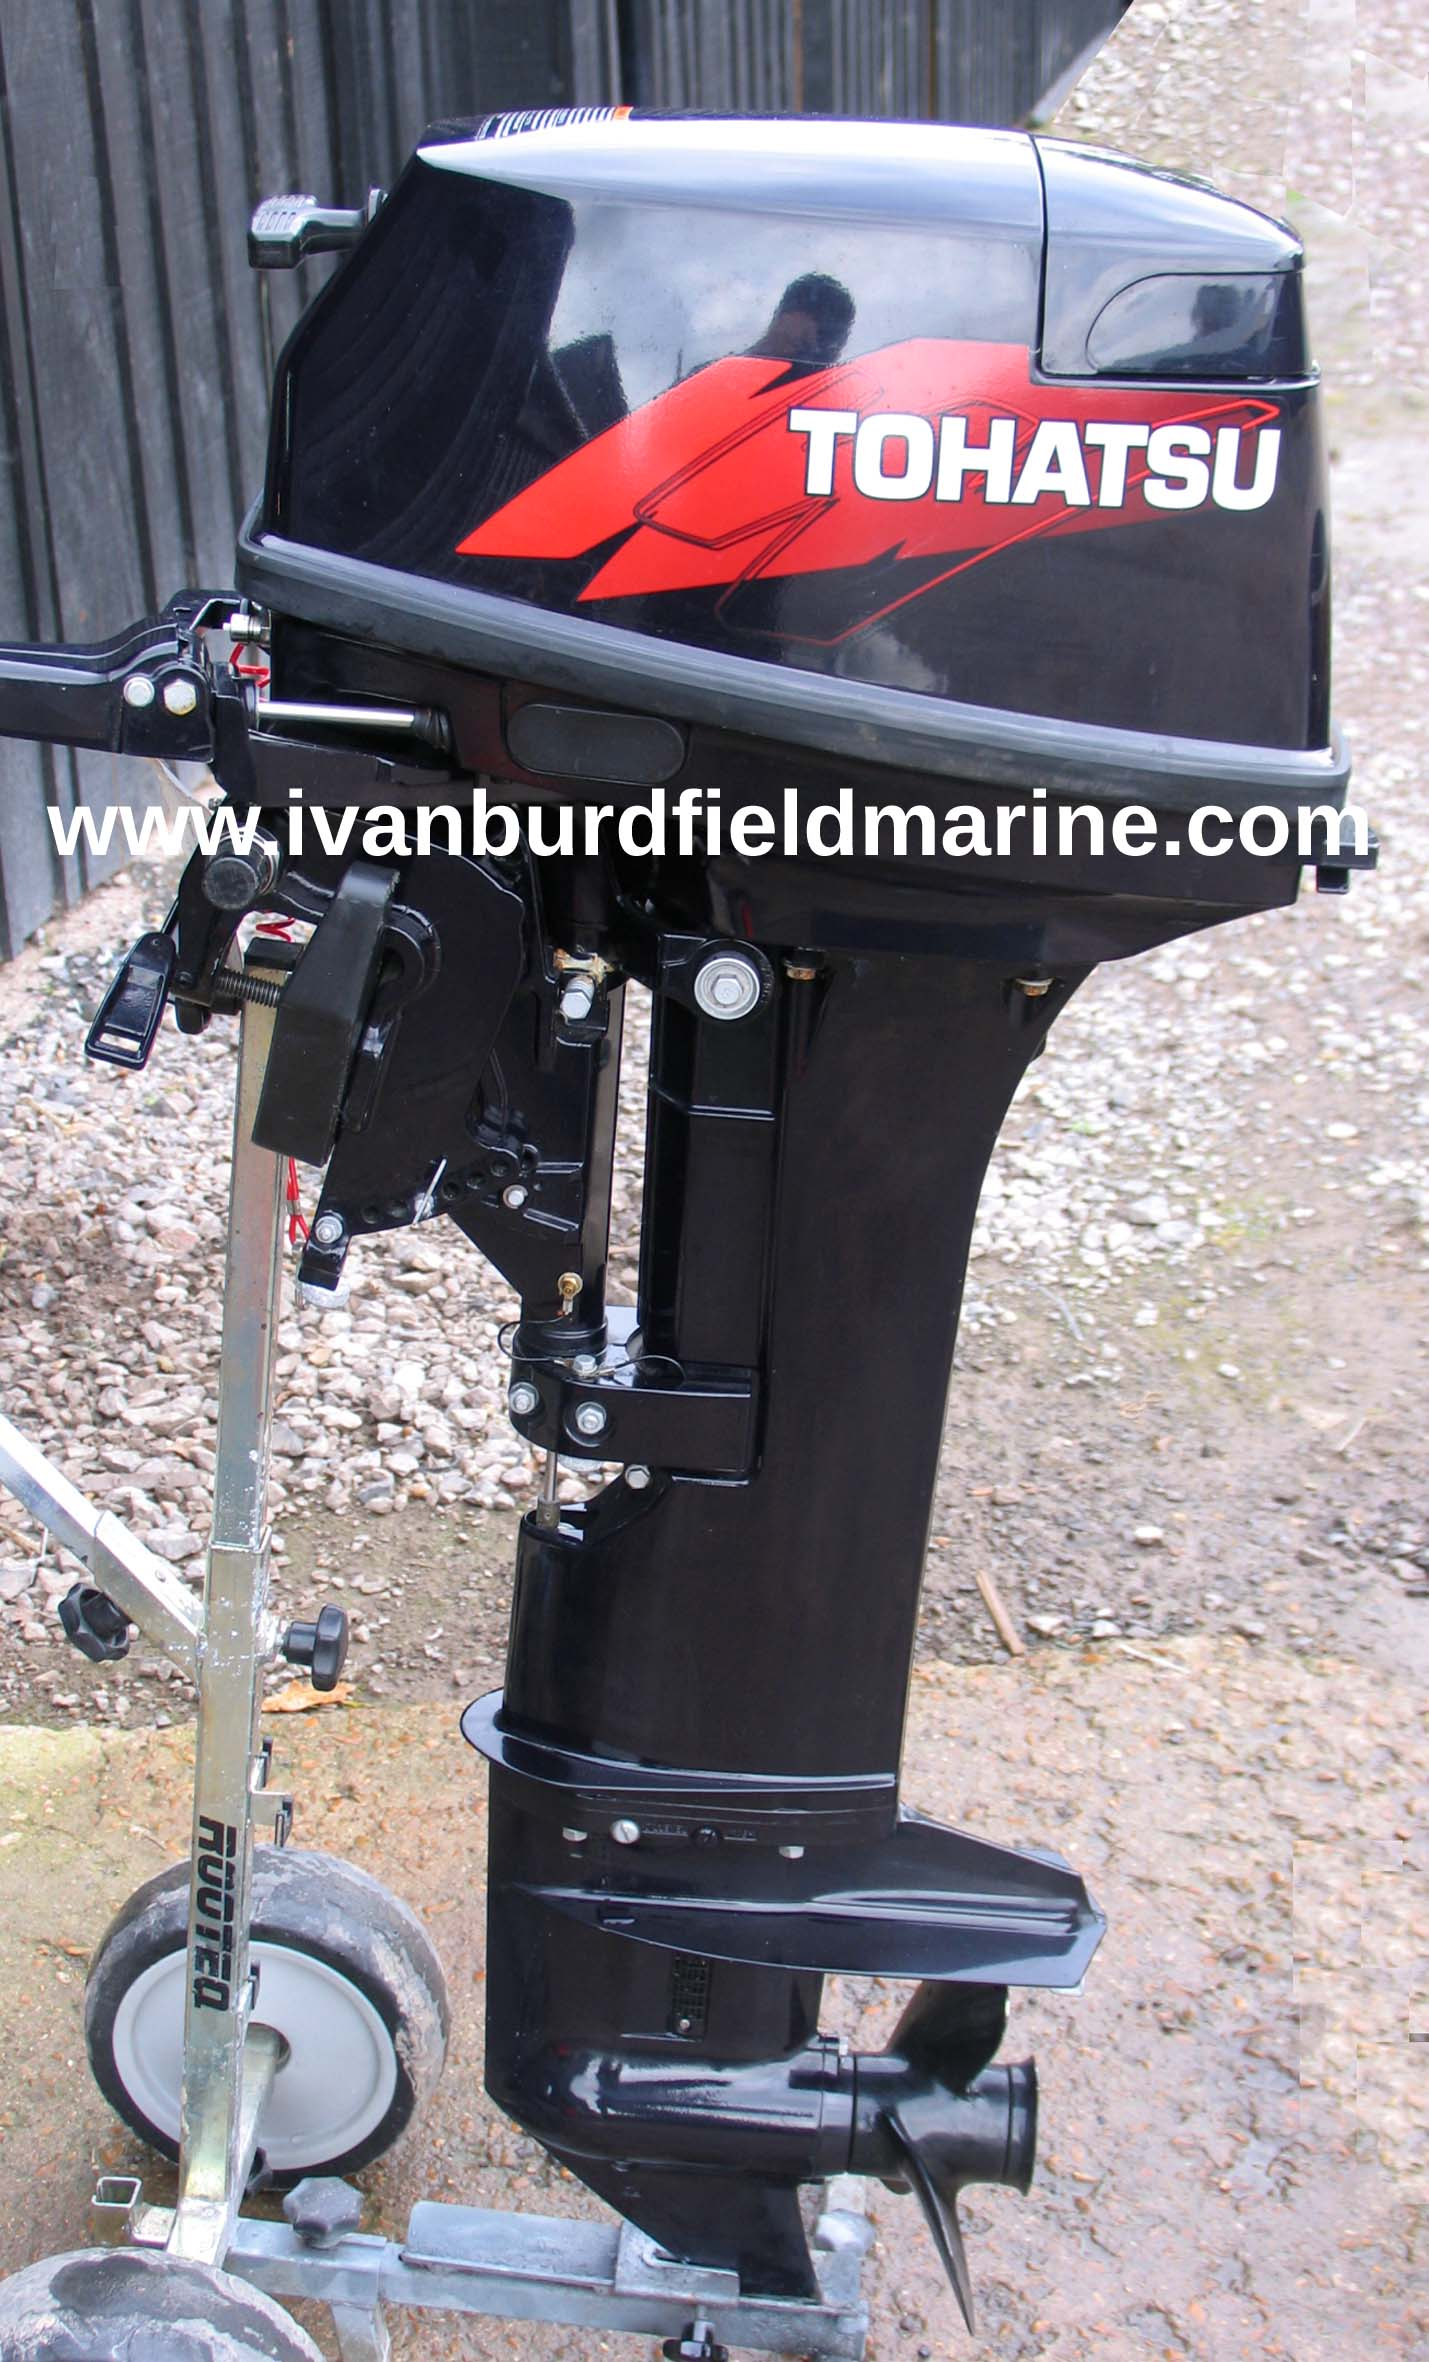 Used Outboards For Sale Uk Southampton Hampshire 2 & 4 stroke